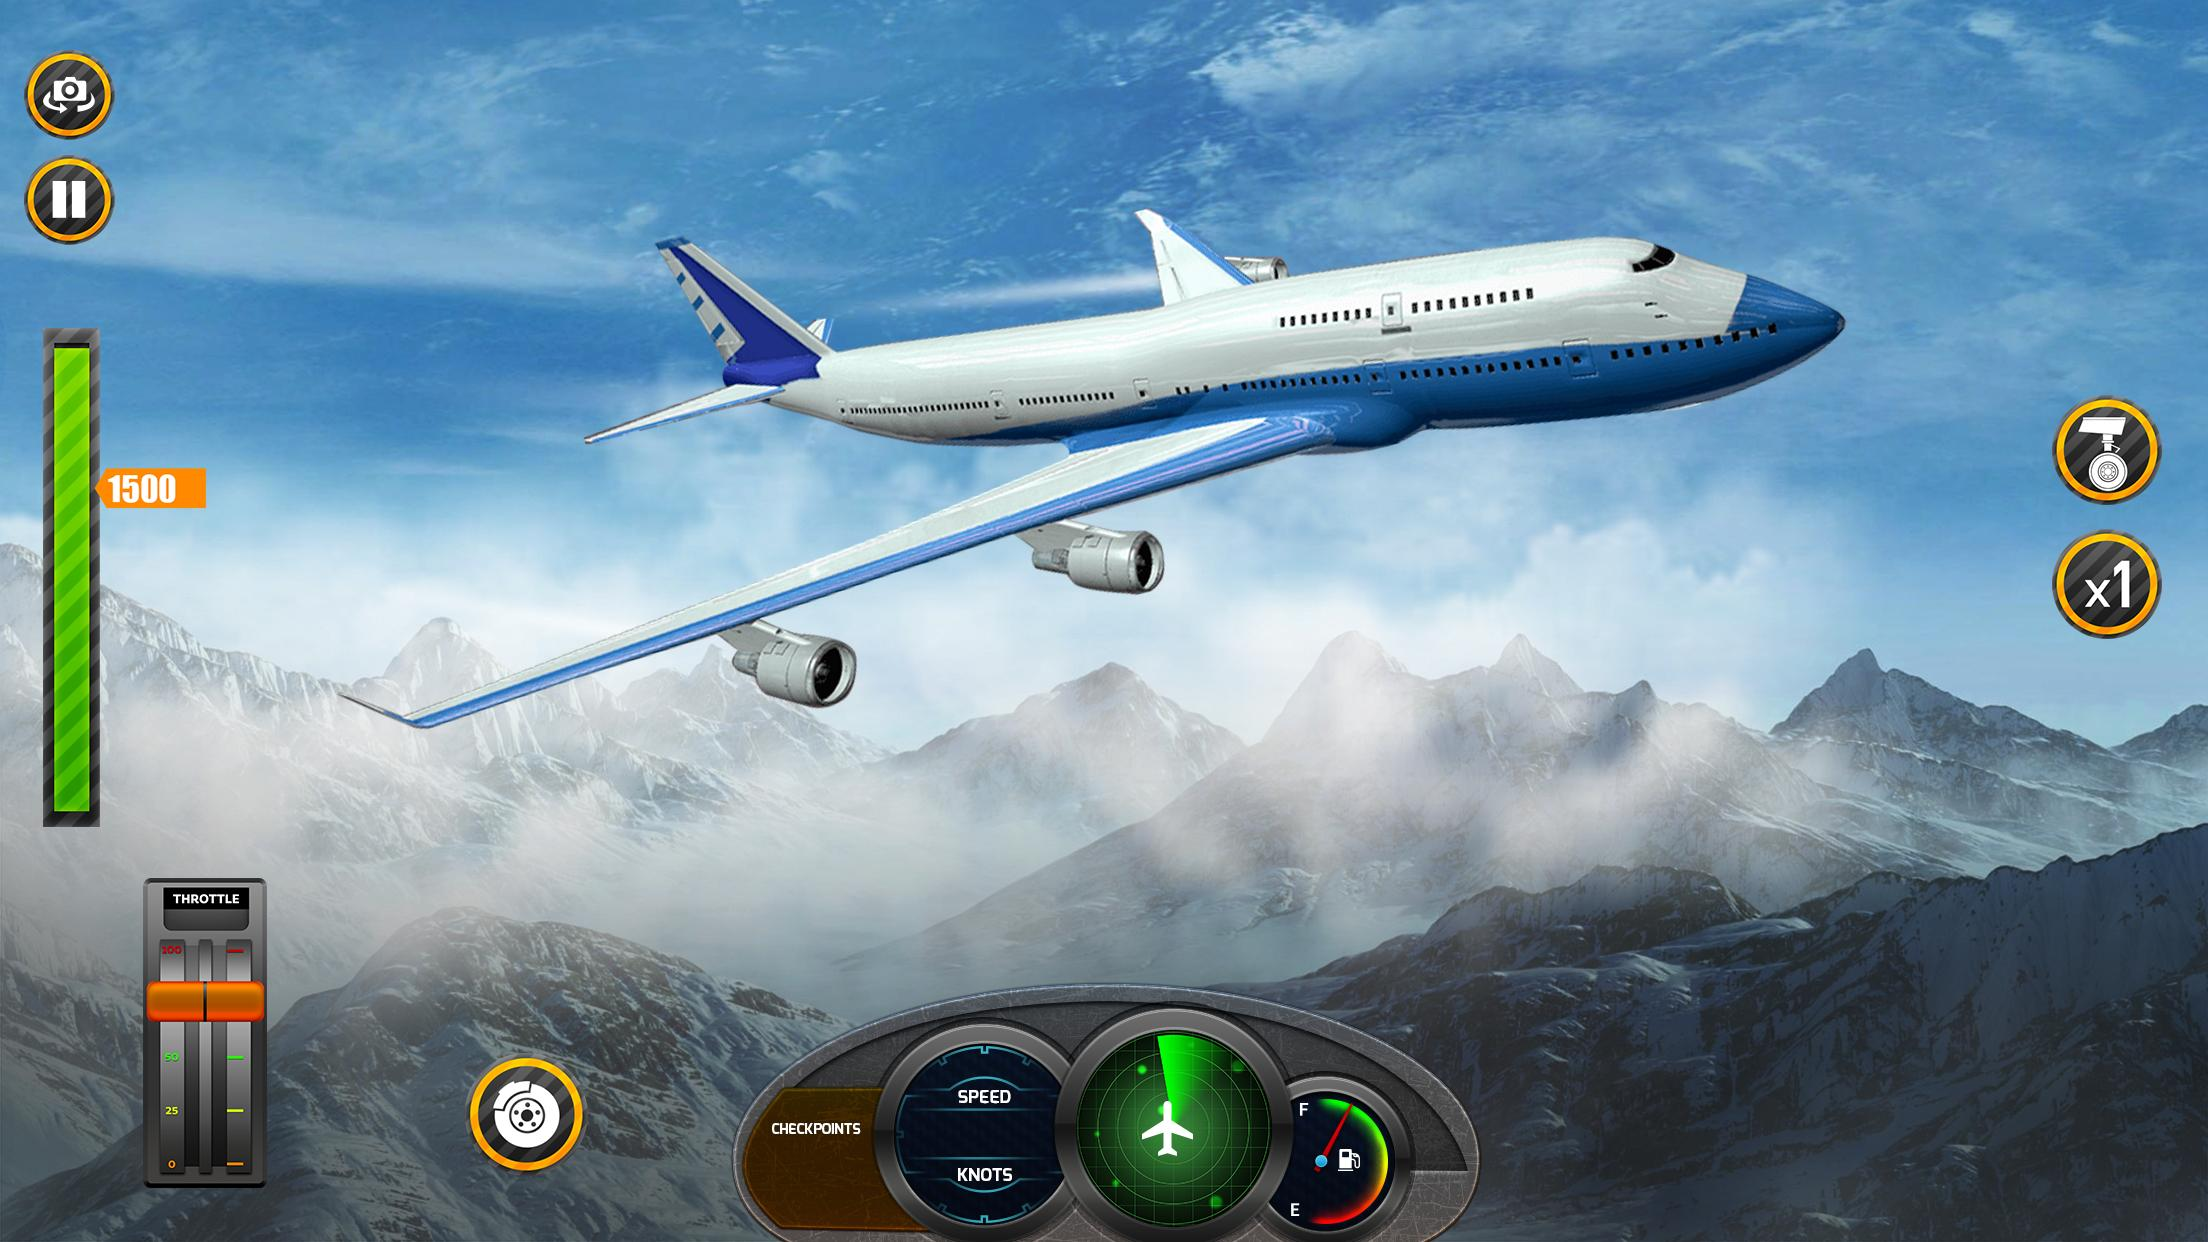 Airplane Real Flight Simulator 2020 Plane Games 5.4 Screenshot 4